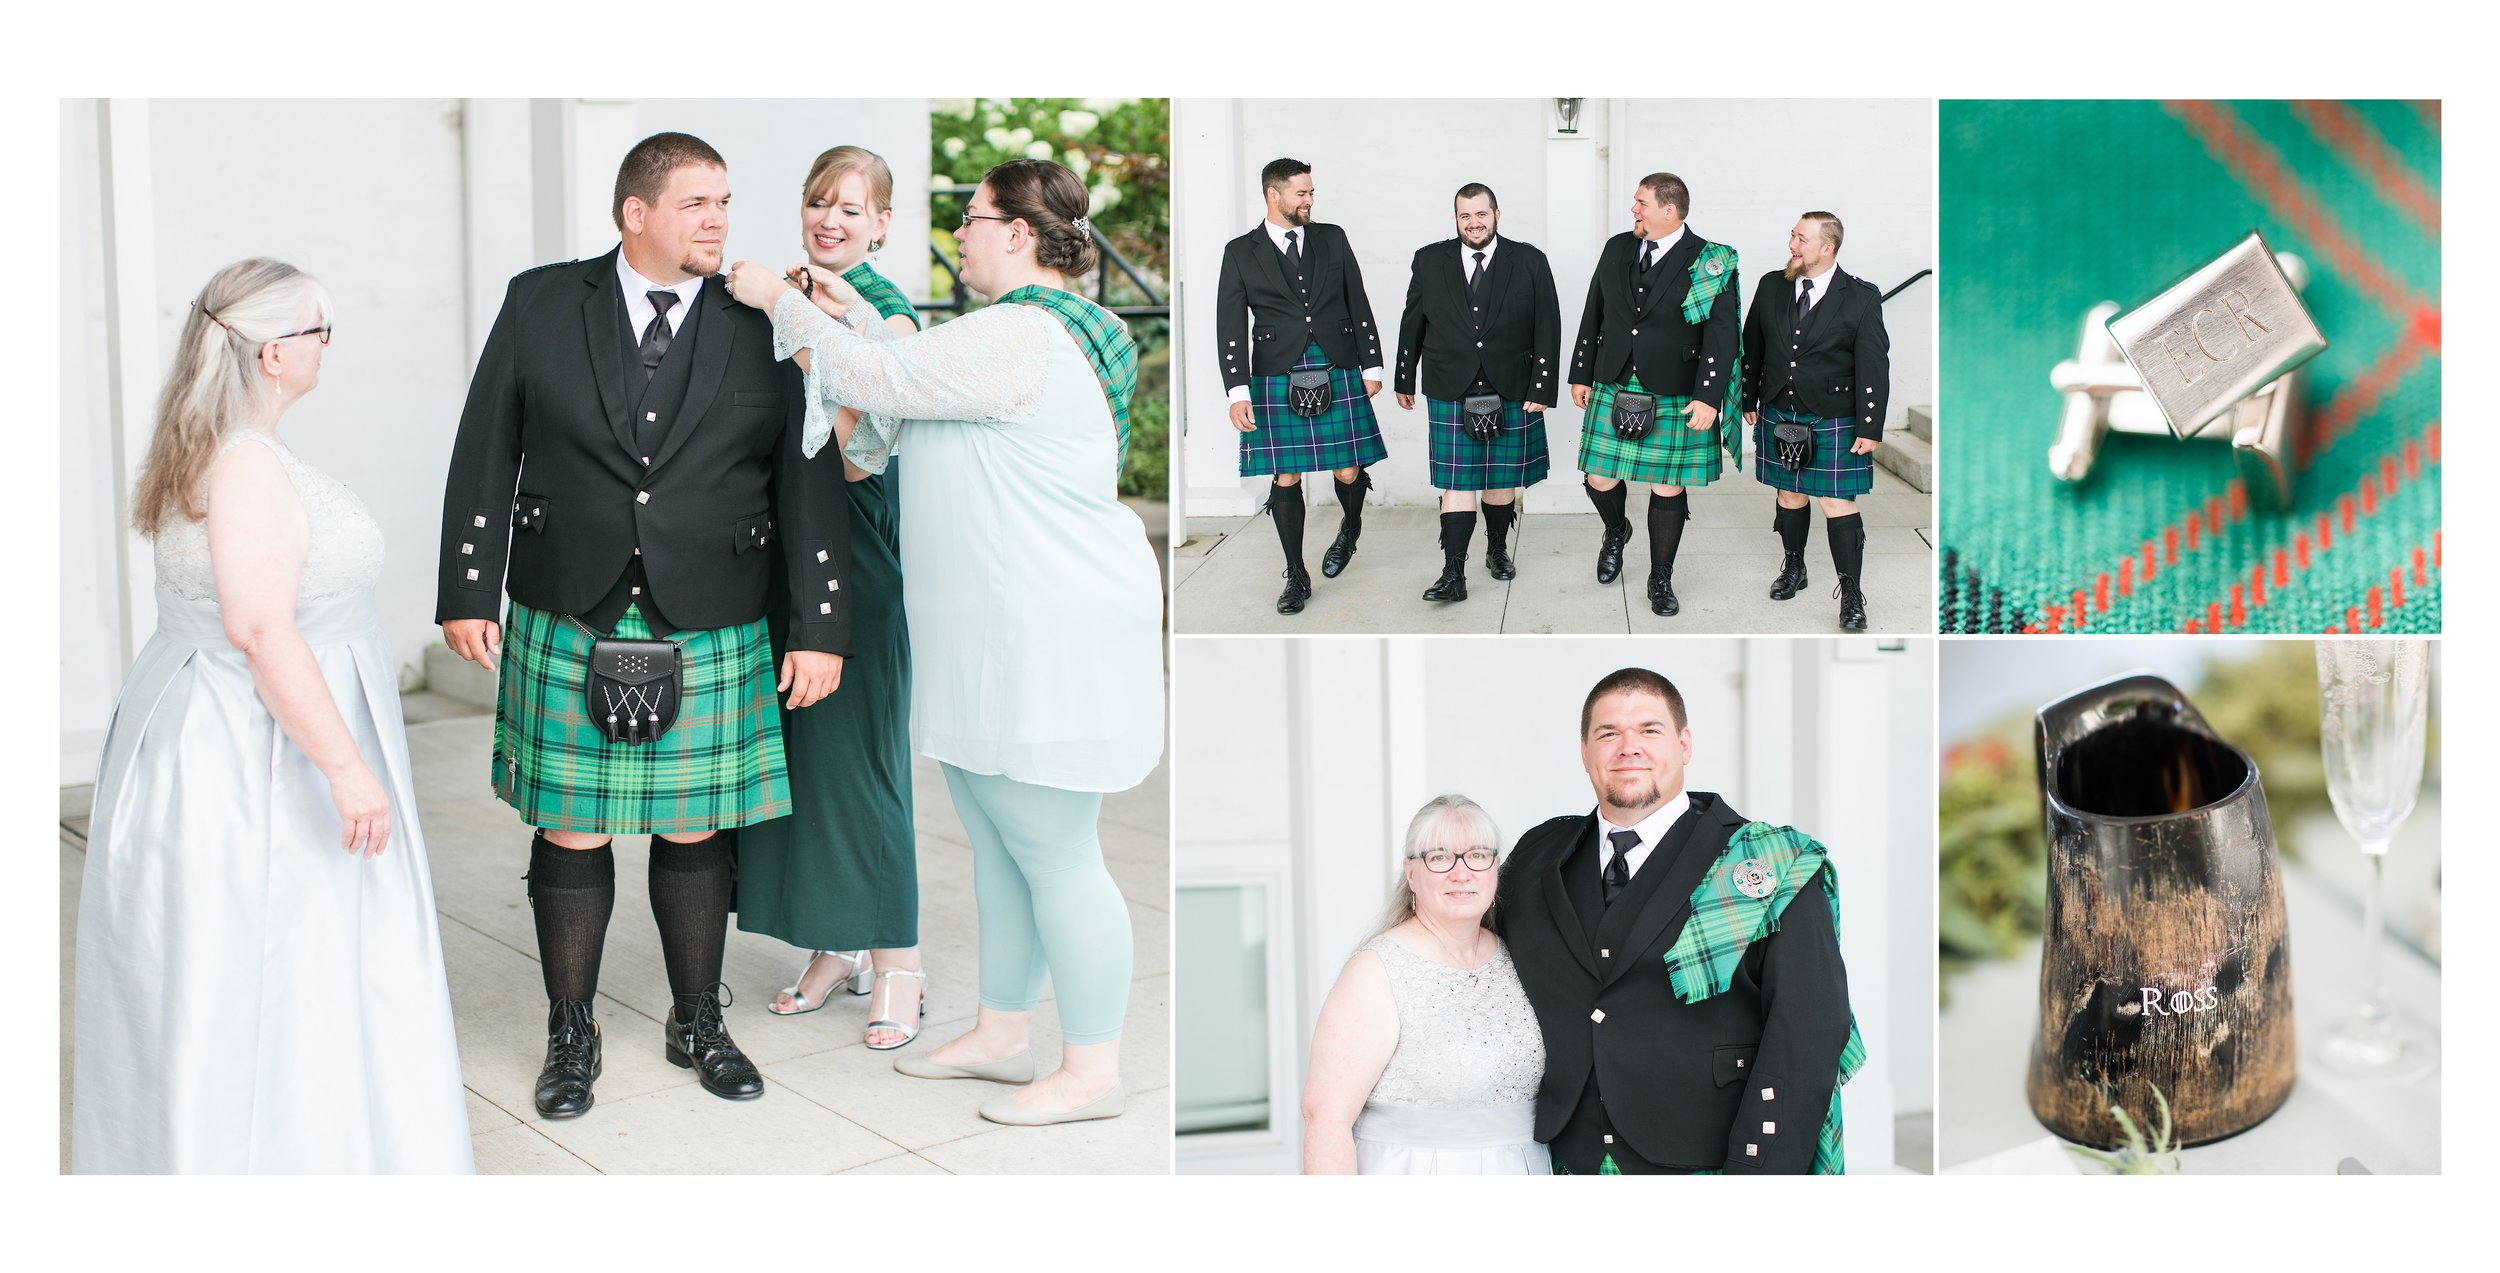 Our_Wedding_Album_12x12_-_30_pages_07.jpg